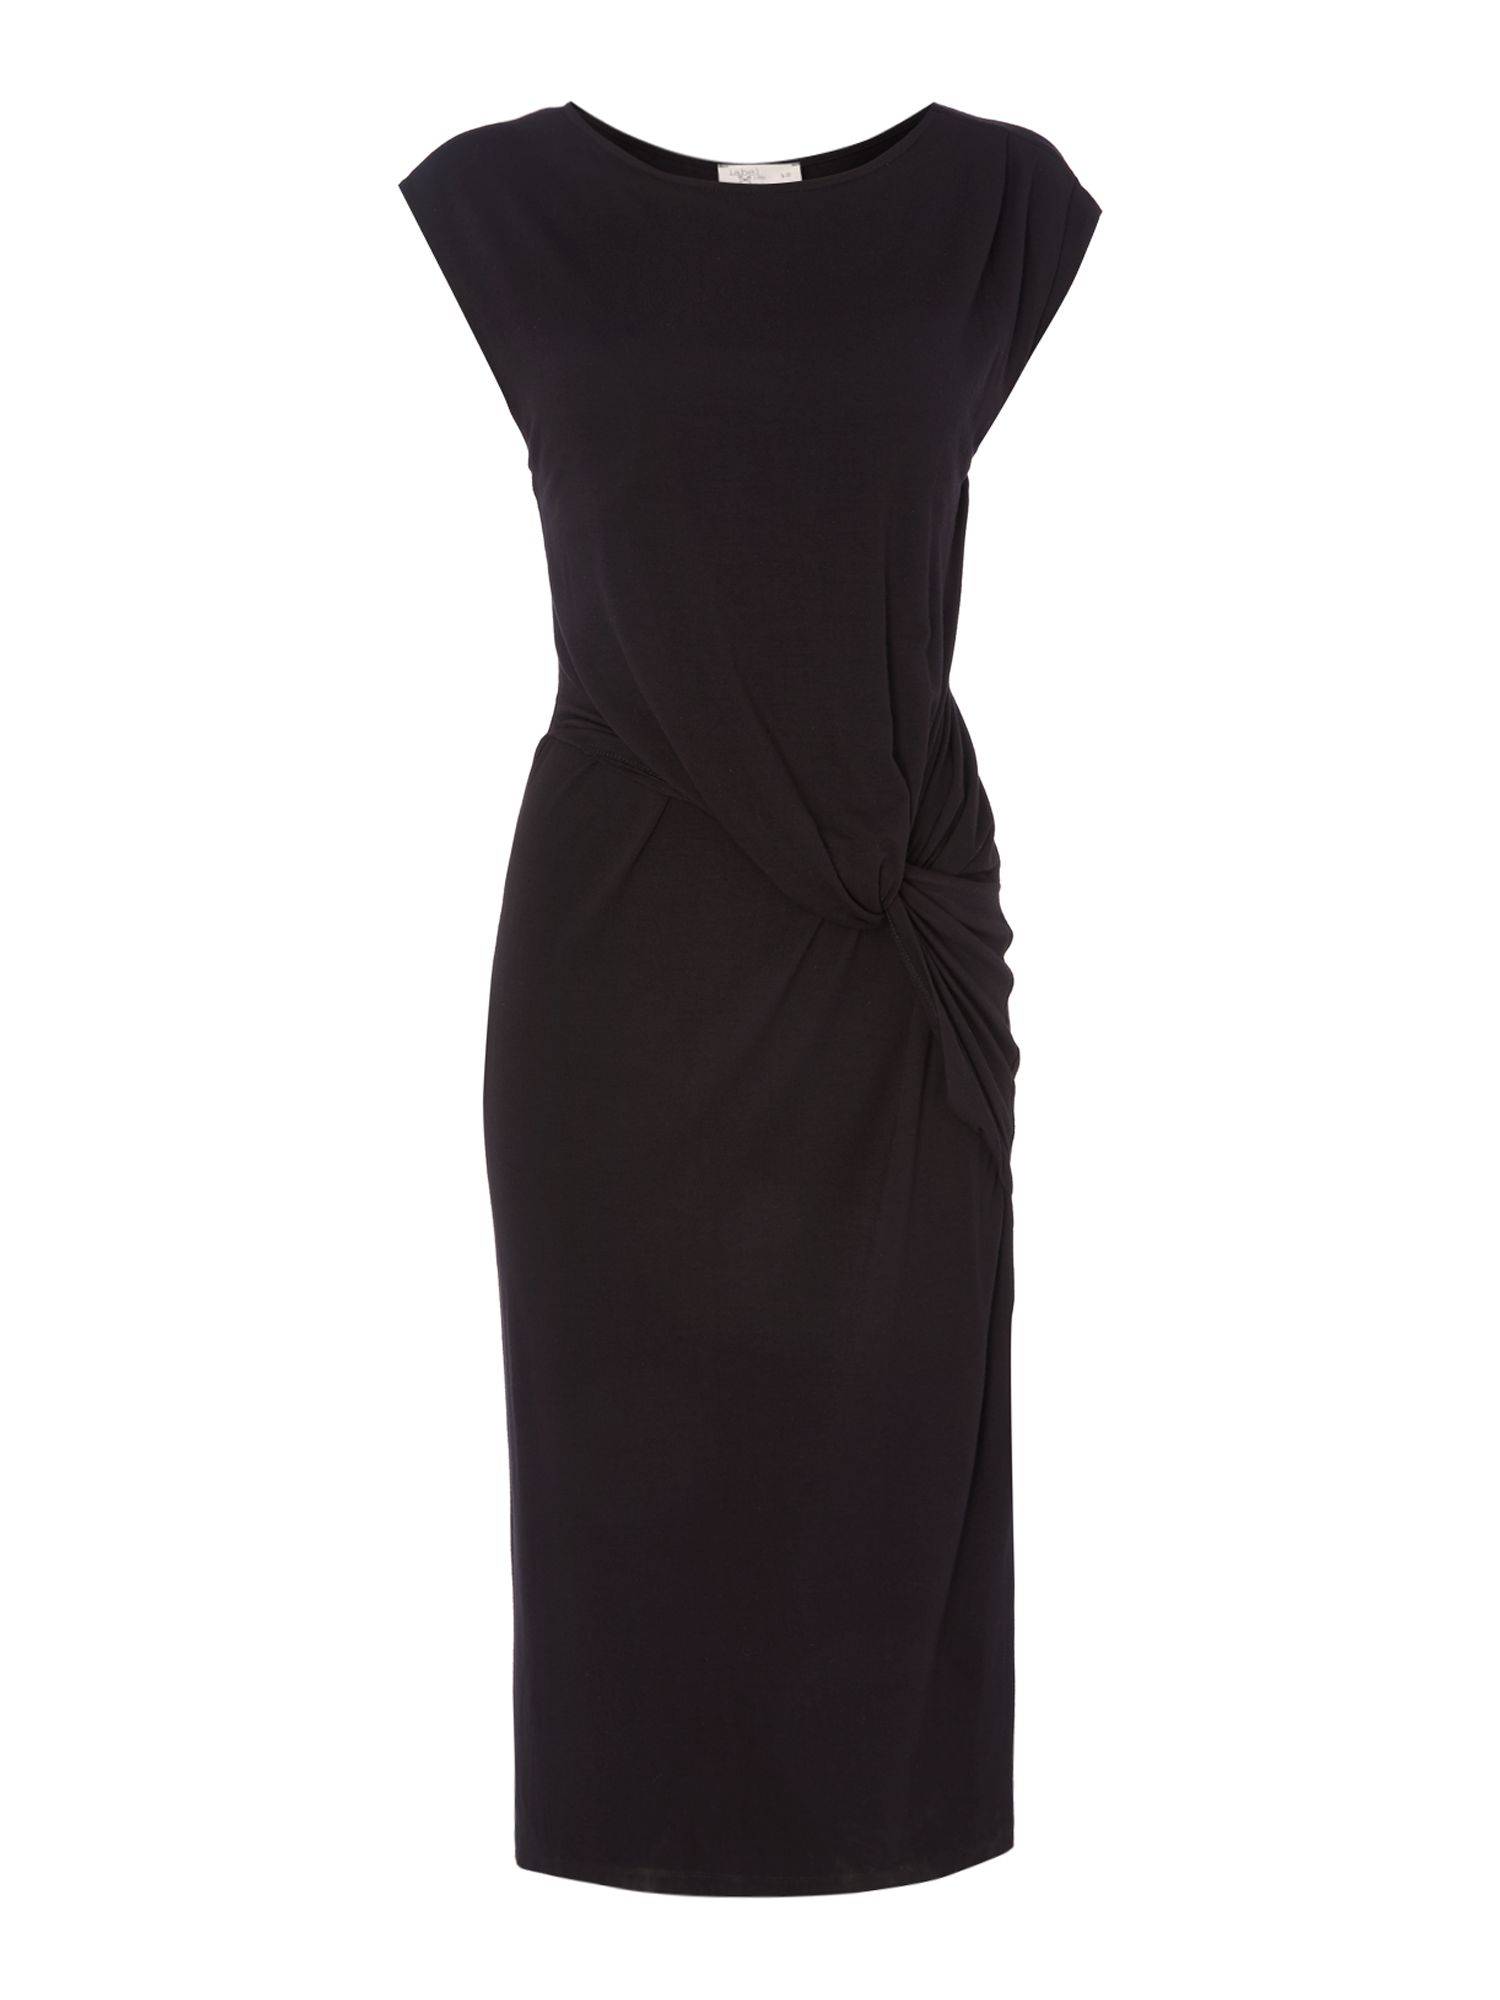 Label Lab Twist Jersey Dress, Black